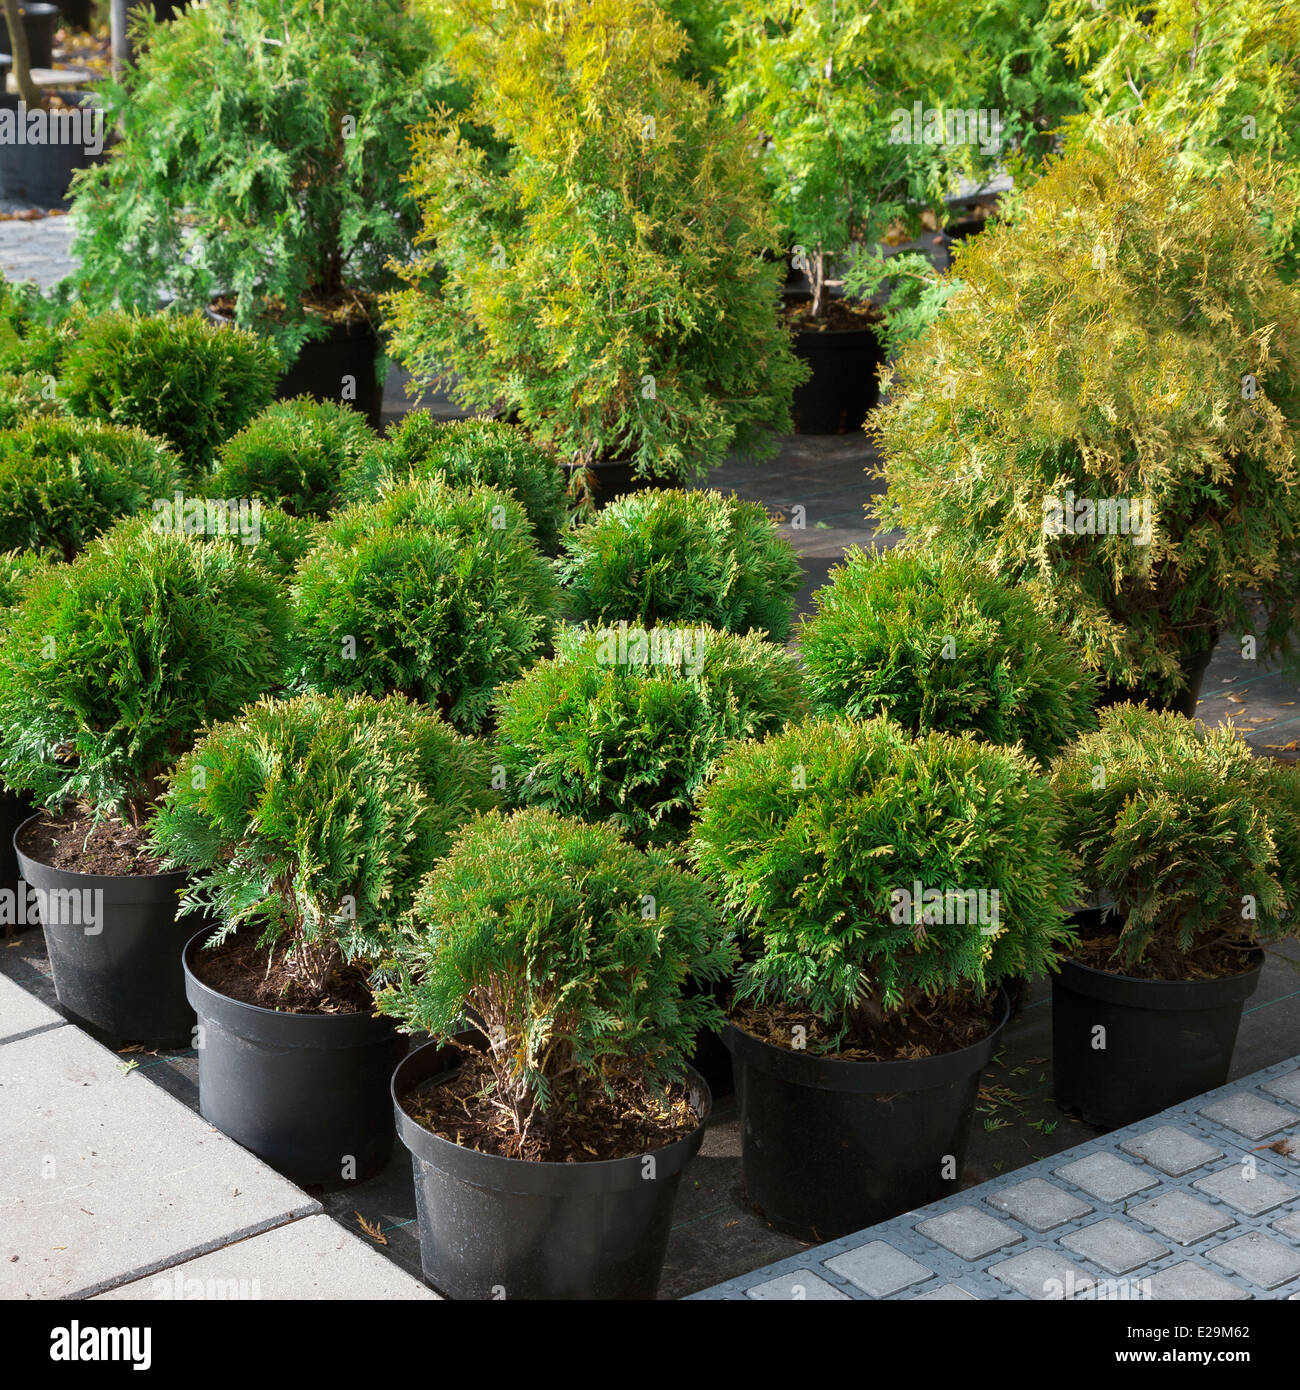 Garden plants being sold in plant nursery - Stock Image